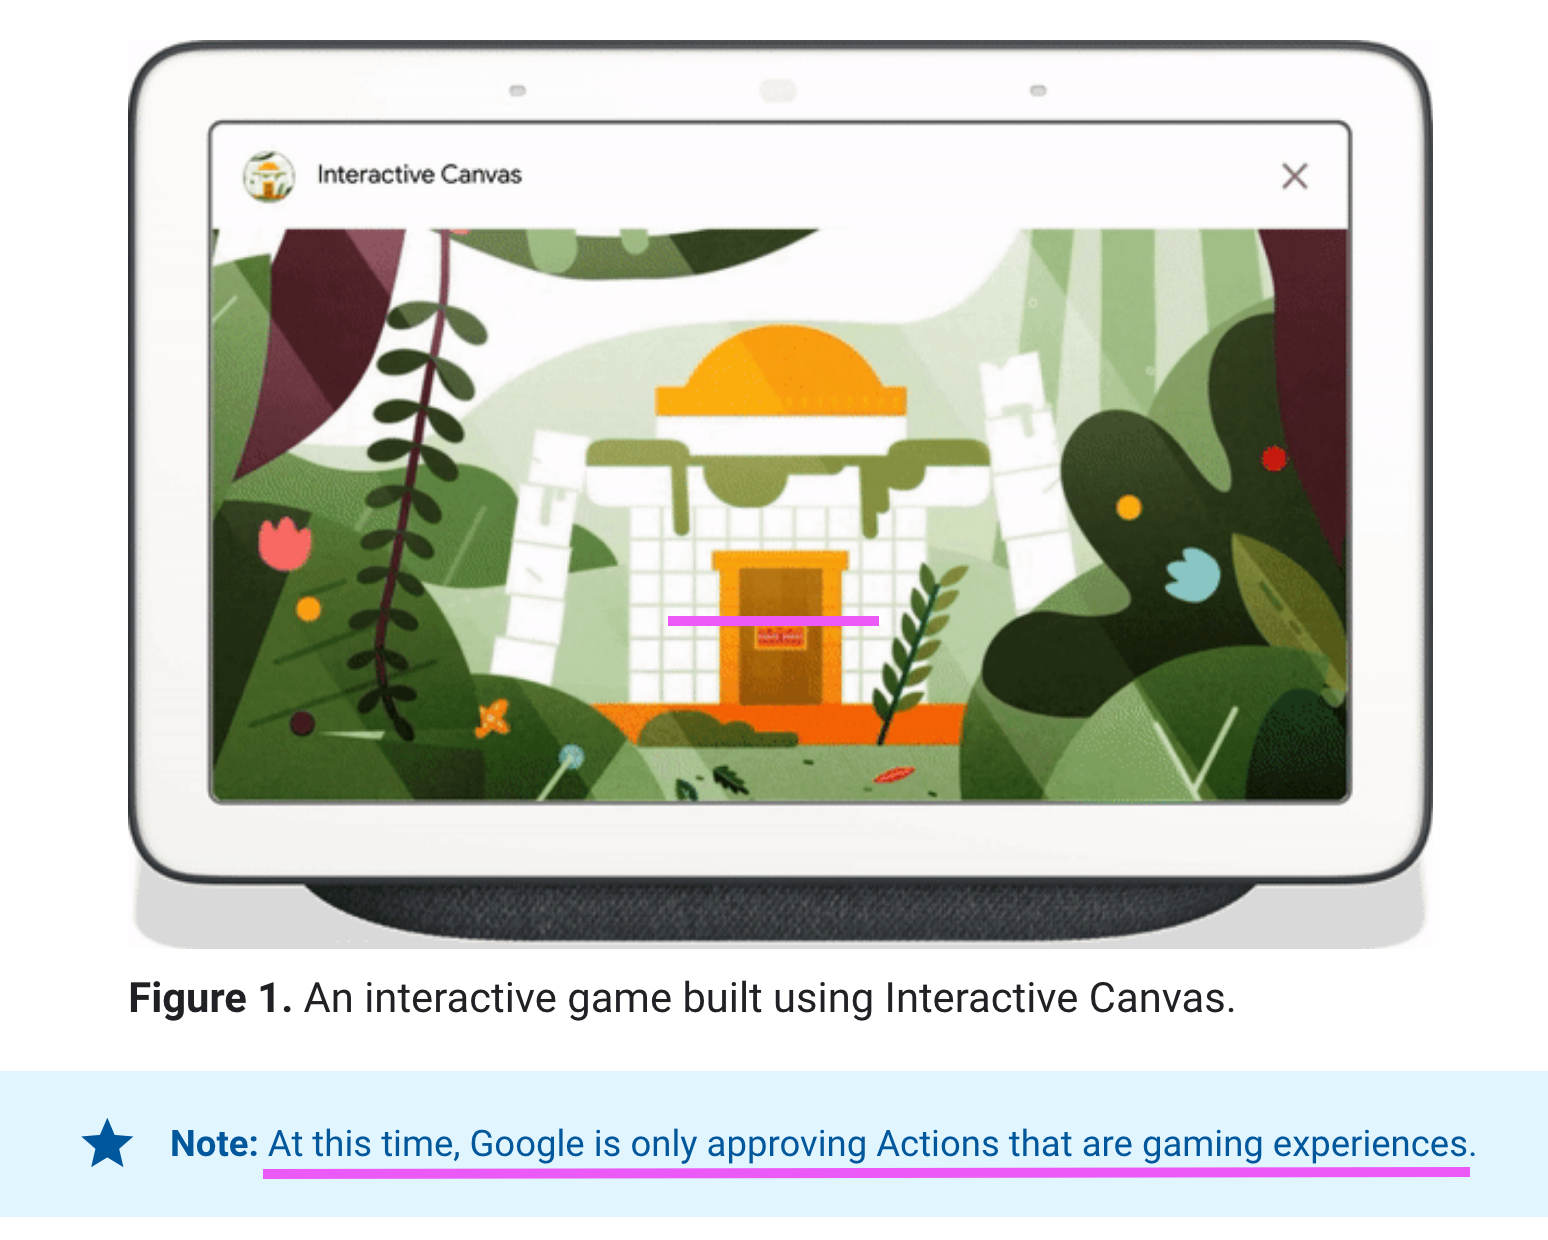 Actions on Google's Interactive Canvas feature